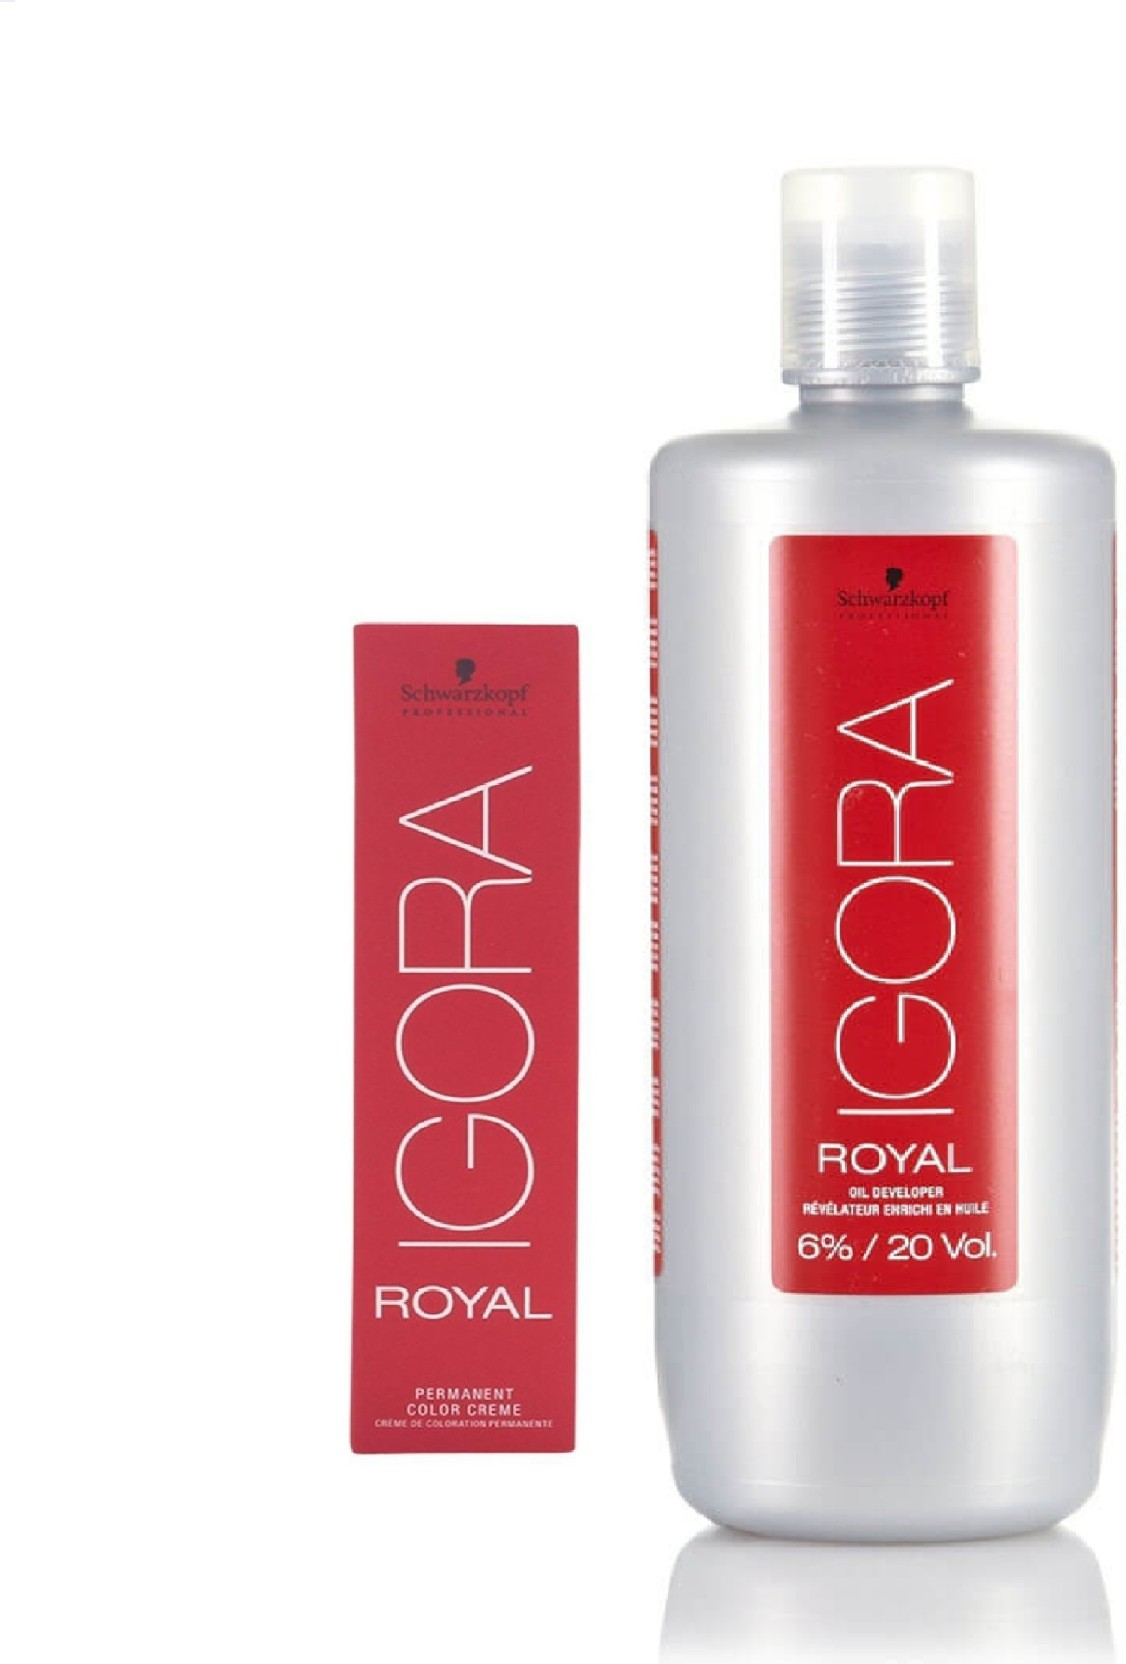 72ca15c3fa Schwarzkopf Igora Royal Permanent color crème 4-99 Medium Brown Violet Extra(1tube)  60mL+ Igora Oil Developer 1000 mL (Set of 2)